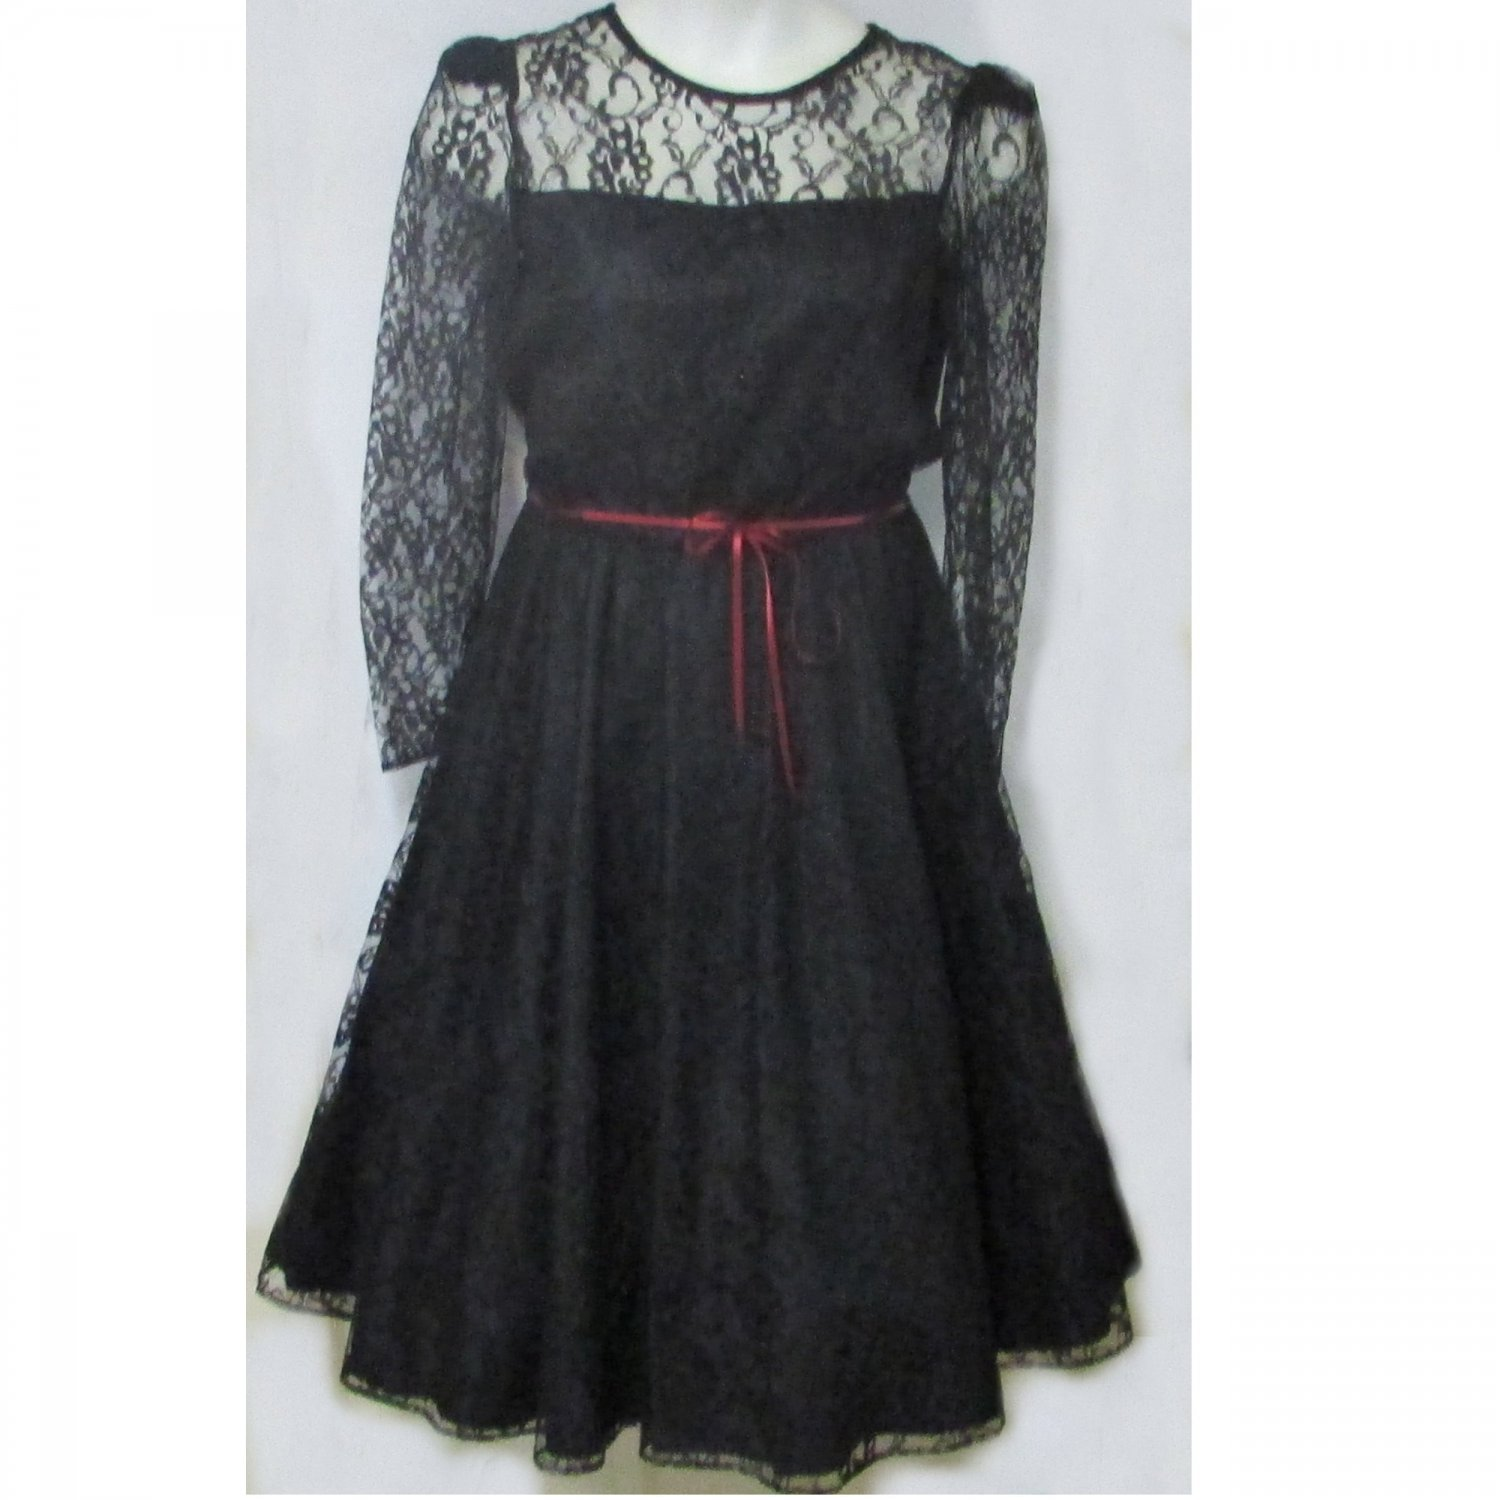 Vintage 1960s lace cocktail party dress full skirt B40 large